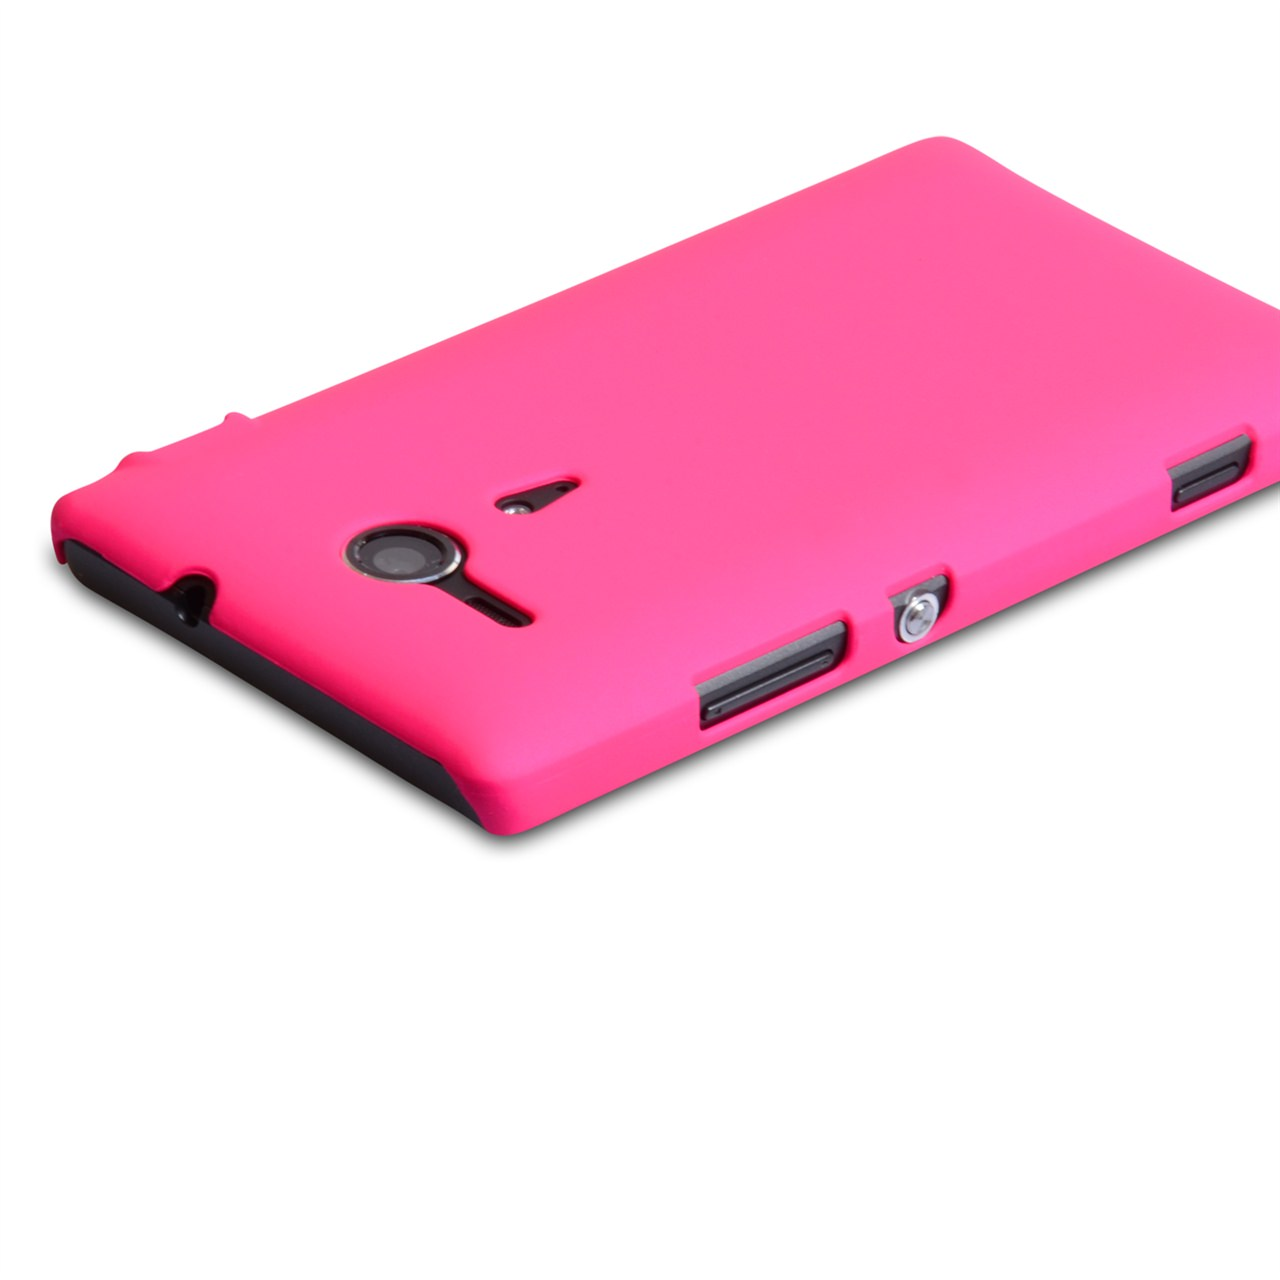 YouSave Accessories Sony Xperia SP Hard Hybrid Case - Hot Pink